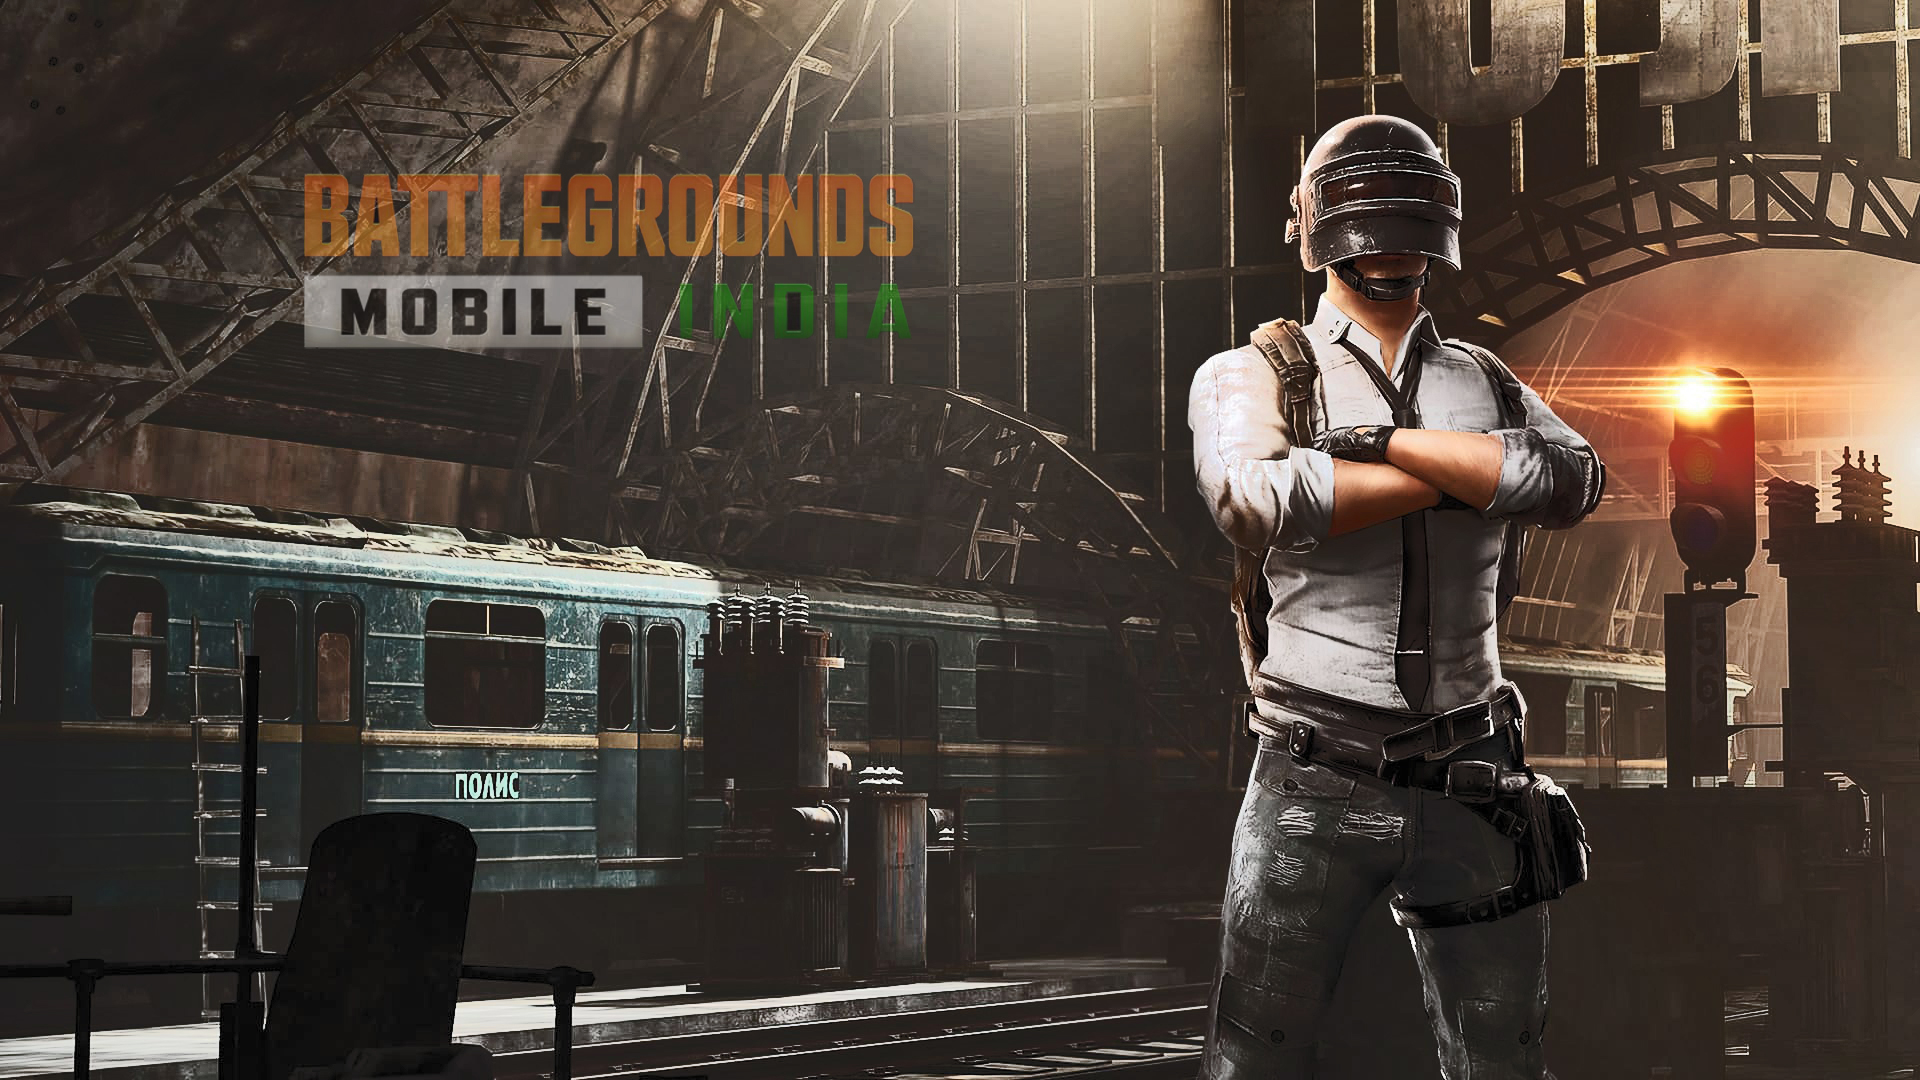 BGMI: How to Fix Lag Issue in Battlegrounds Mobile India